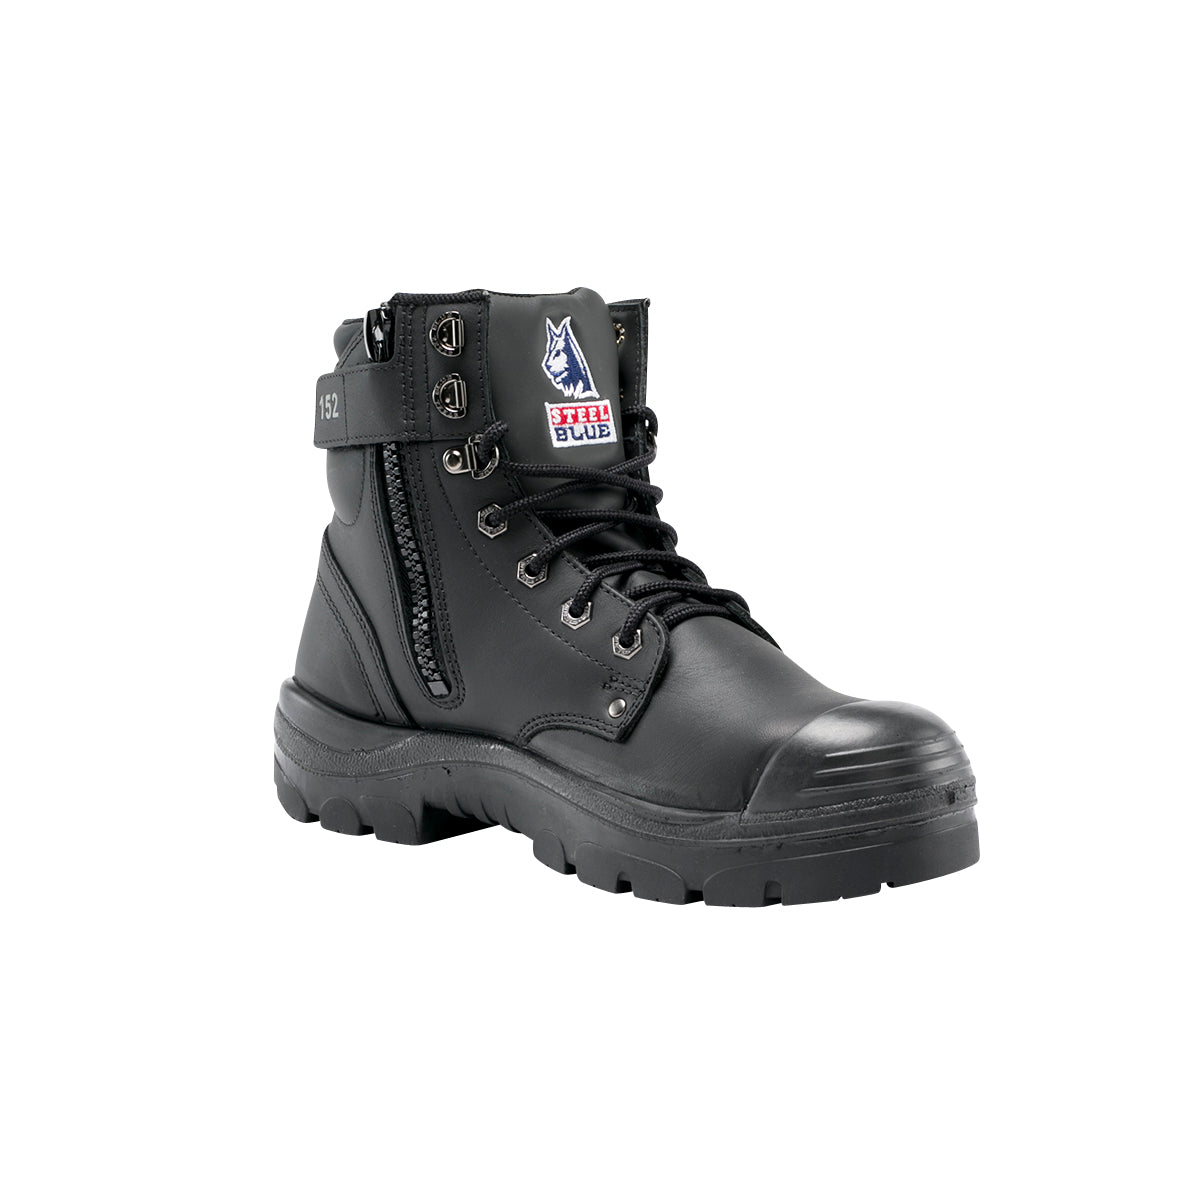 Steel Blue 332152 - Argyle Safety Lace up Boot with Zip and Bump Cap